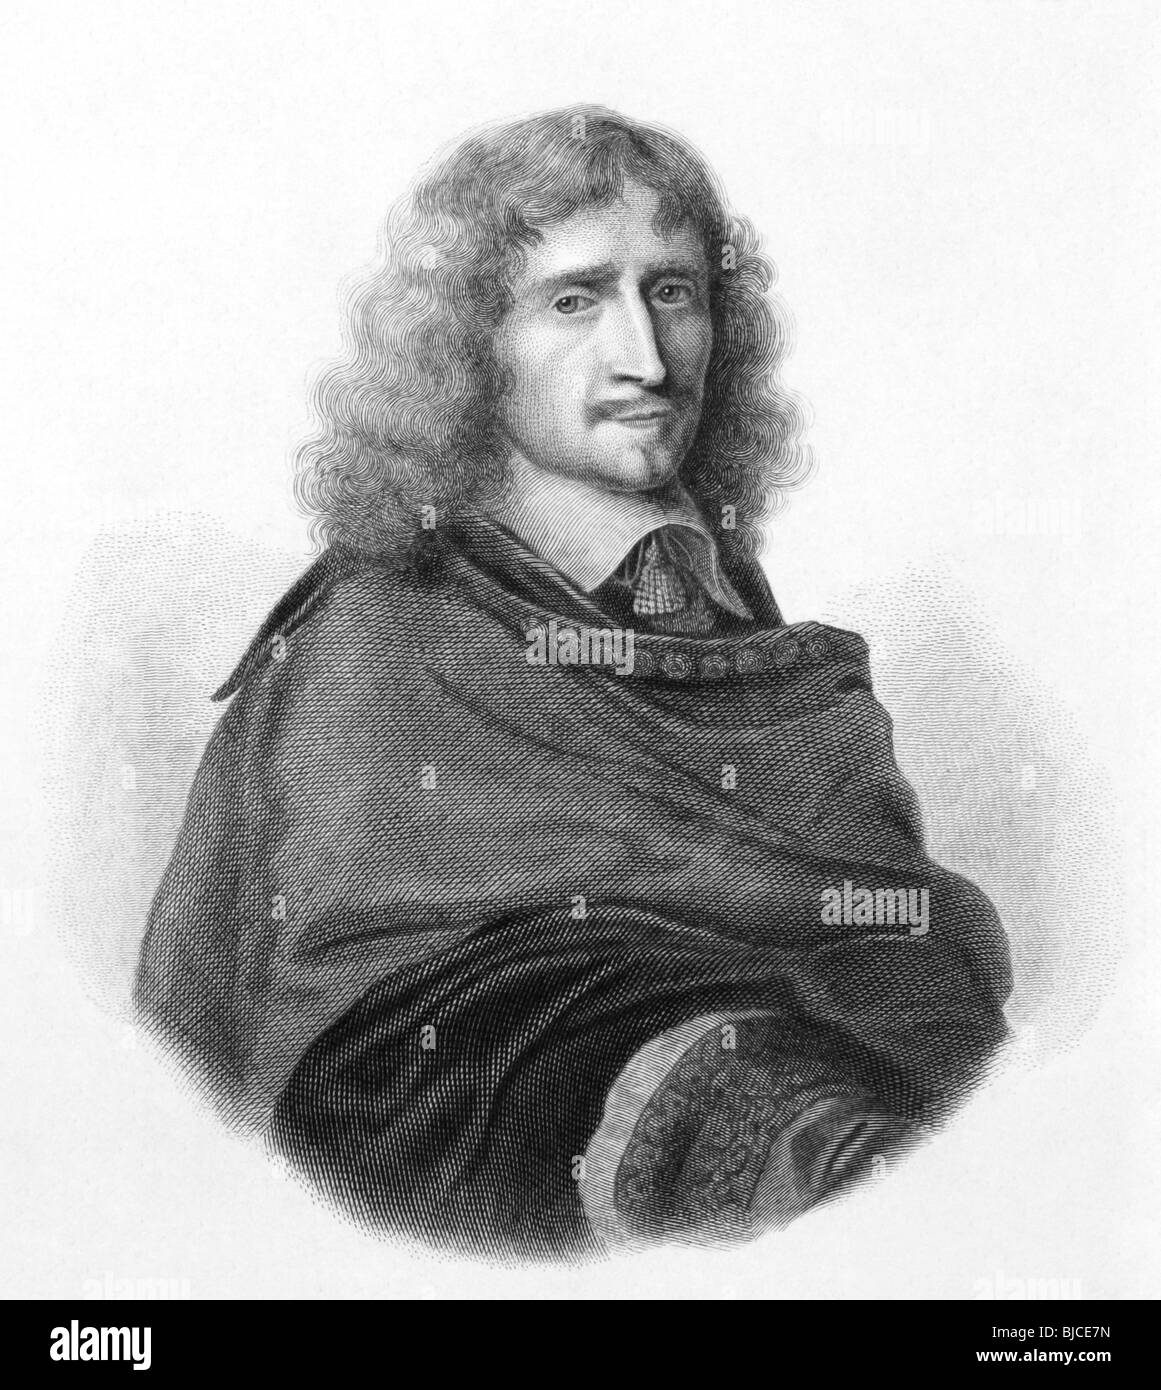 Richard Browne (1610-1669) on engraving from 1800s. Major-General in the English Parliamentary army during the English - Stock Image